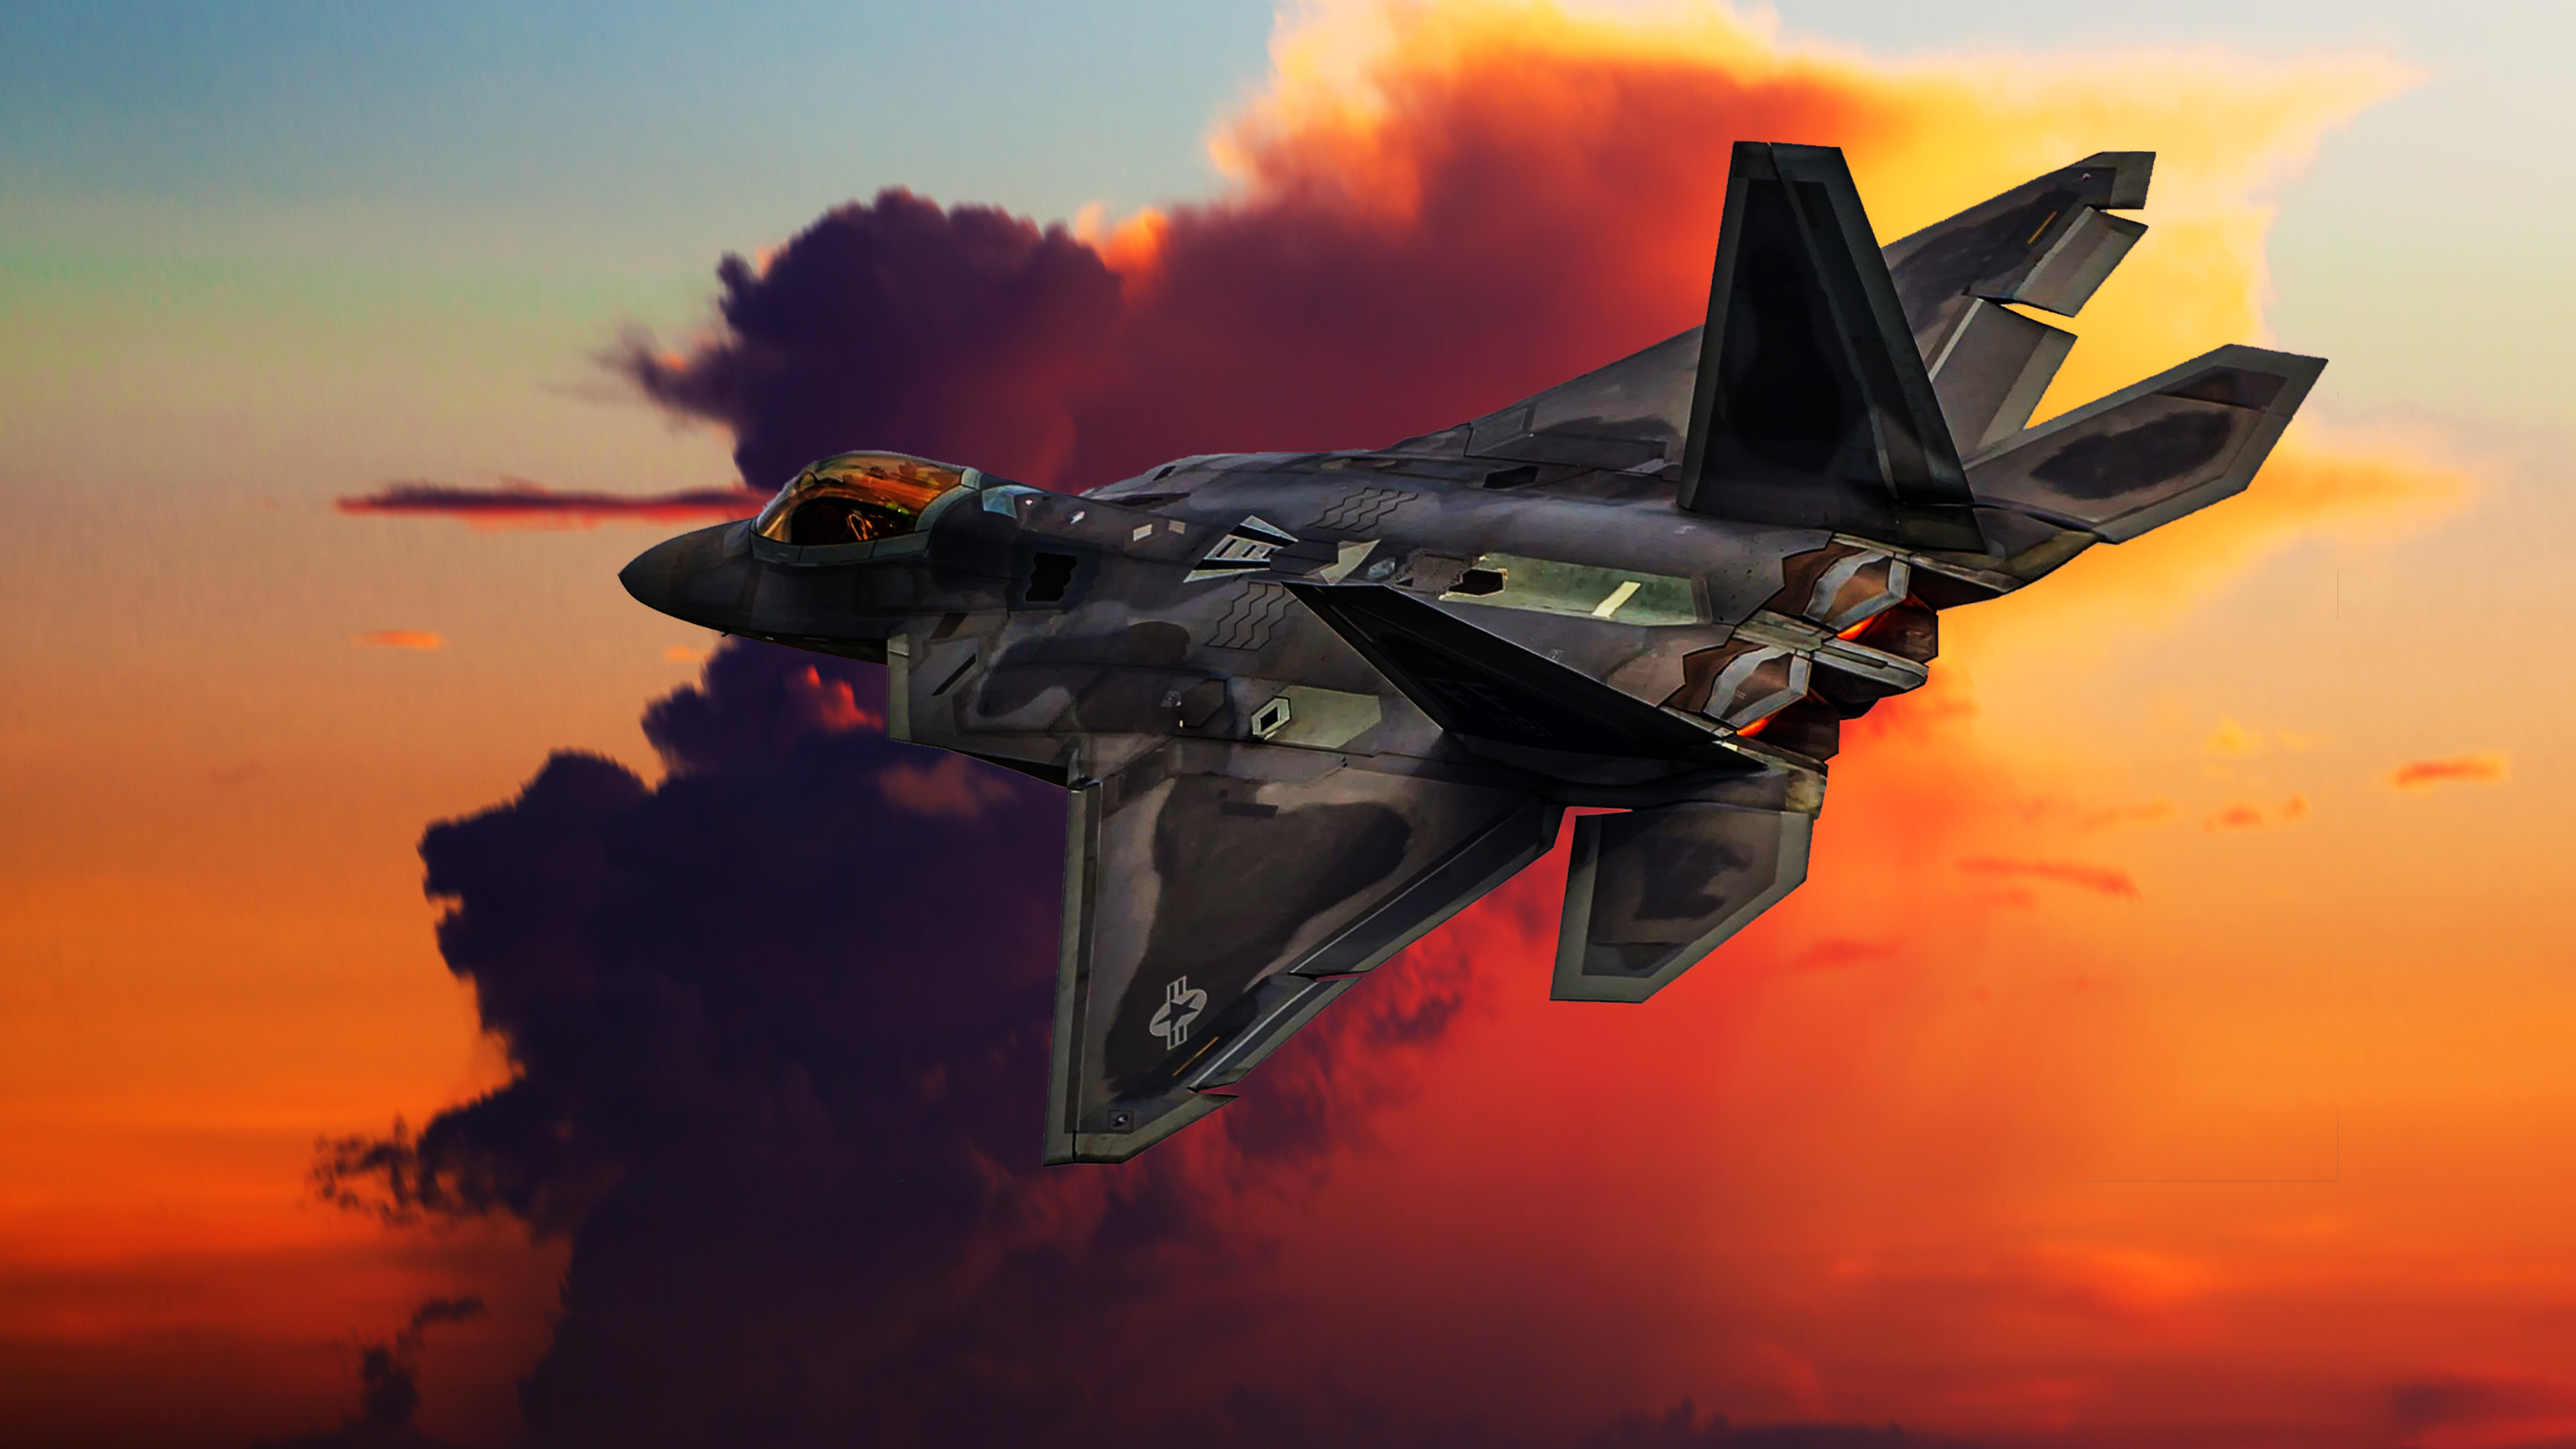 raptor artwork 4k 1547938010 - Raptor Artwork 4k - planes wallpapers, hd-wallpapers, digital art wallpapers, deviantart wallpapers, artwork wallpapers, artist wallpapers, 4k-wallpapers